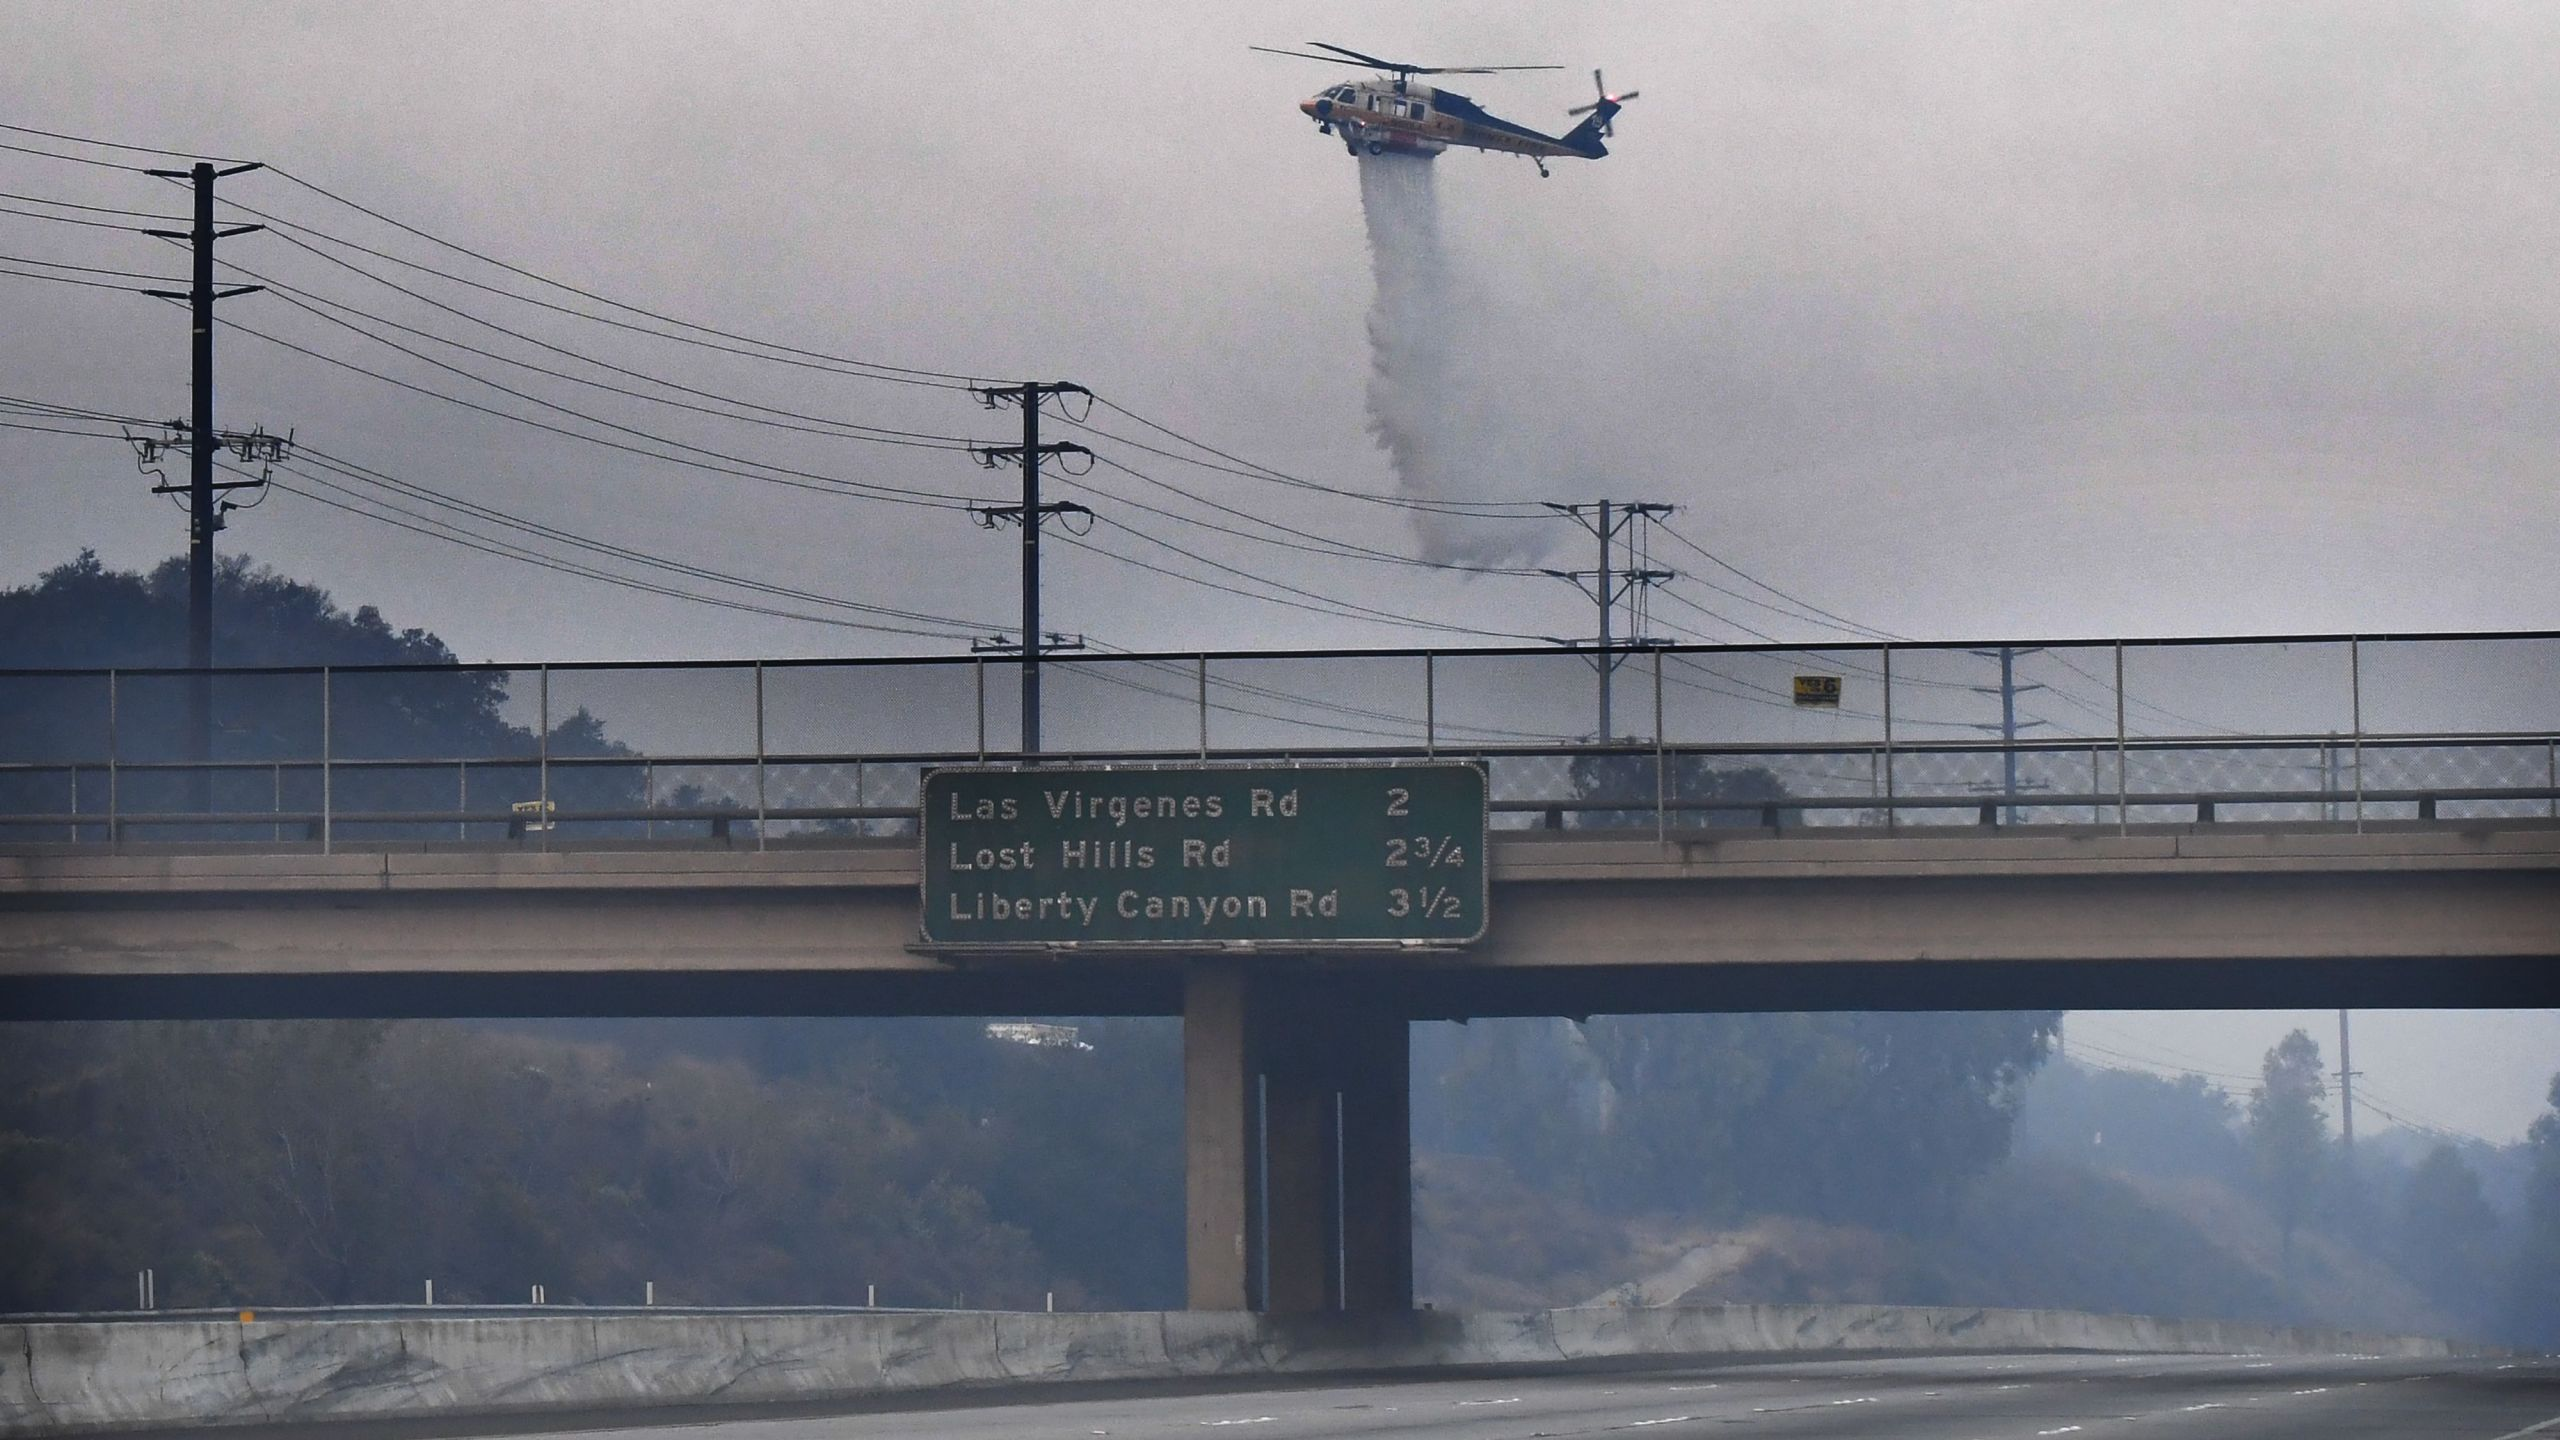 A helicopter drops water on a hot spot from the Woolsey Fire on Nov. 10, 2018 along the 101 Freeway in Calabasas. (Credit: ROBYN BECK/AFP/Getty Images)